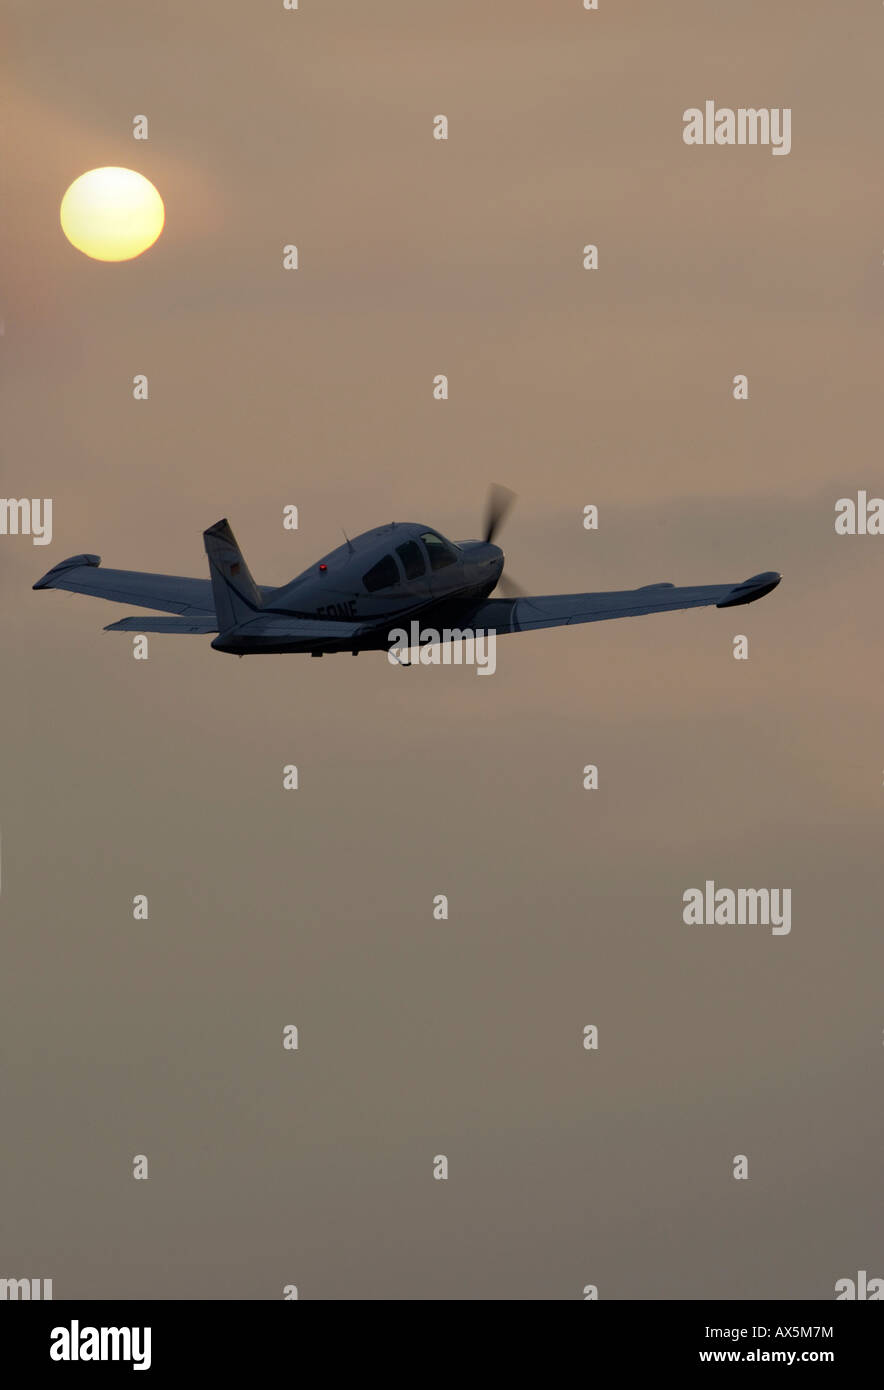 Piper aircraft flying in the evening sun over the ocean (composite shot), Egelsbach, Hesse, Germany, Europe - Stock Image